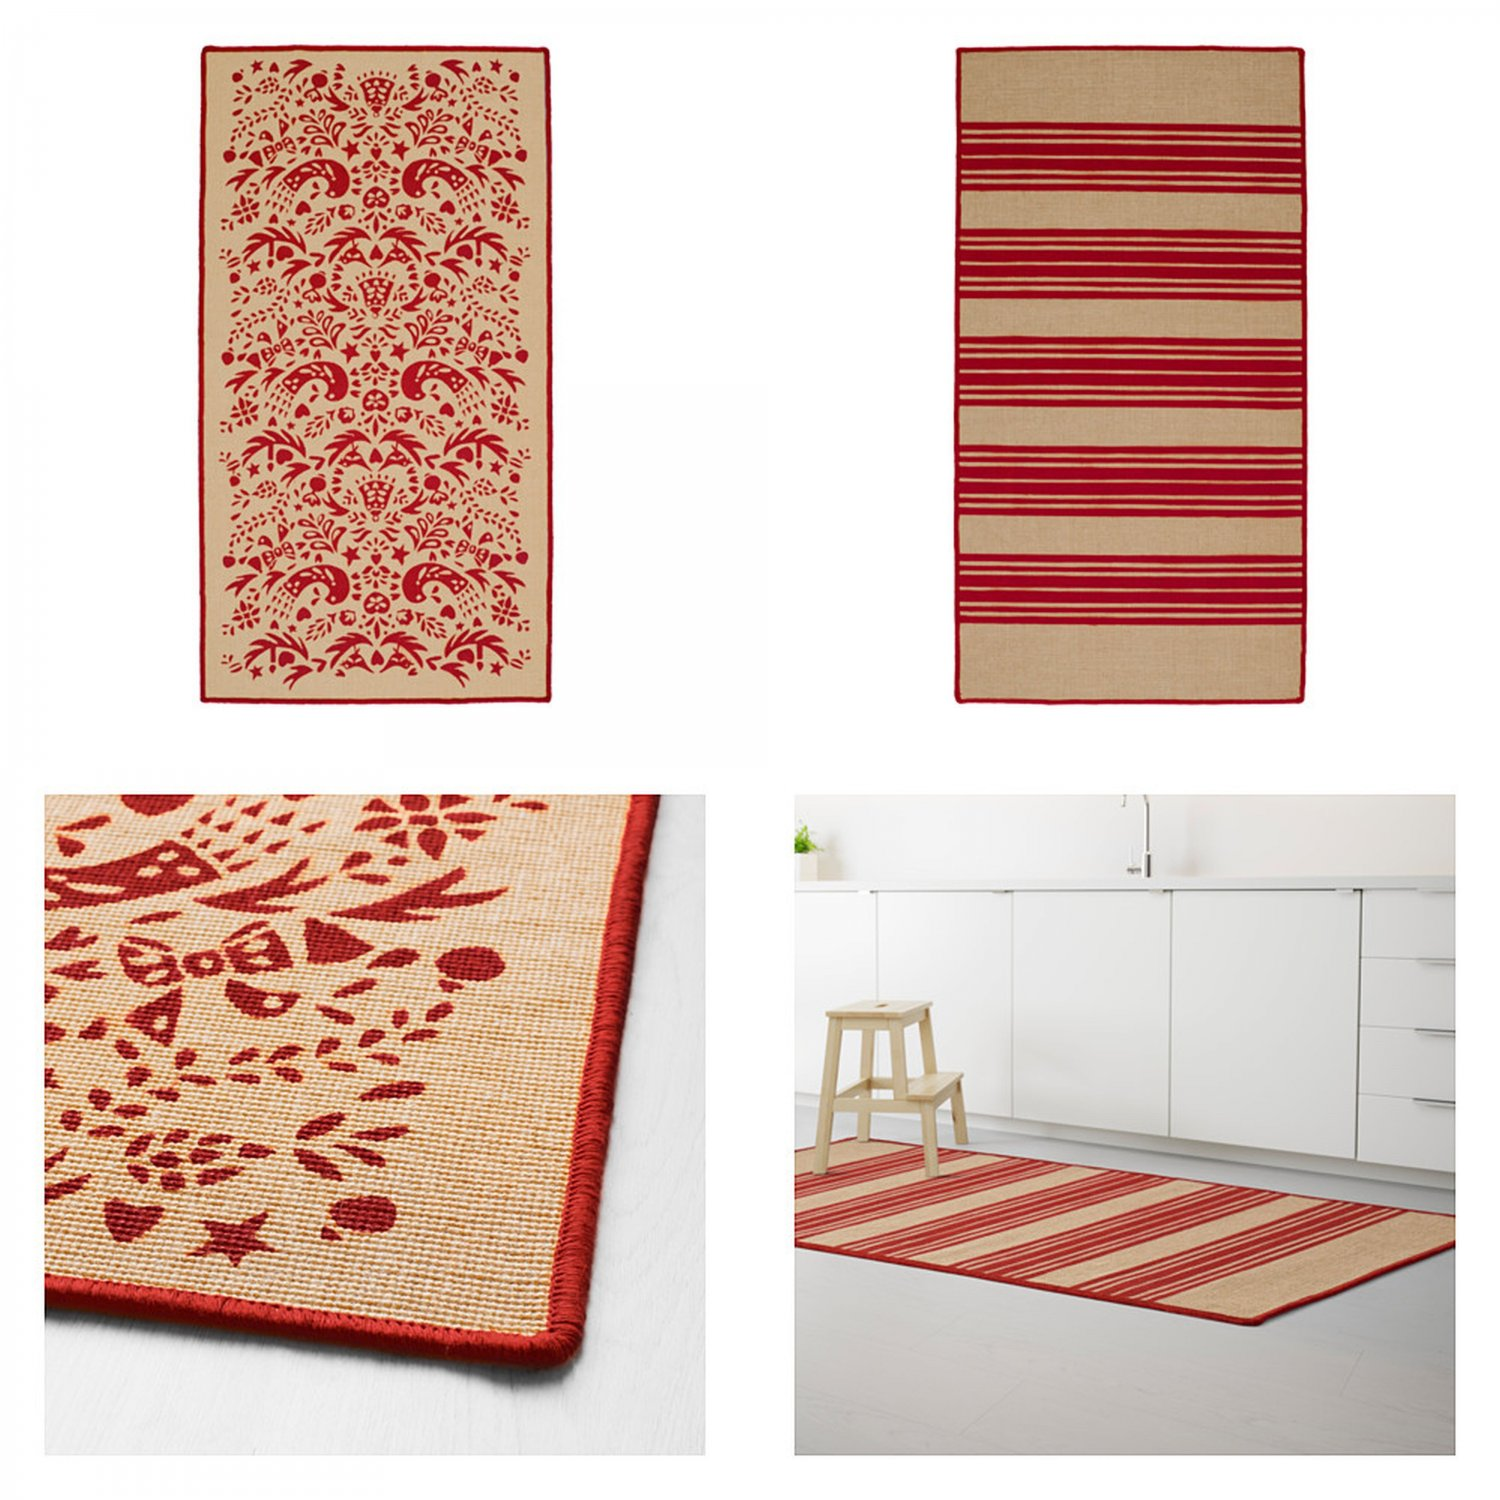 Ikea Kitchen Rugs Canada: IKEA Vinter 2016 RED Striped Tolle Pattern RUG Area Throw